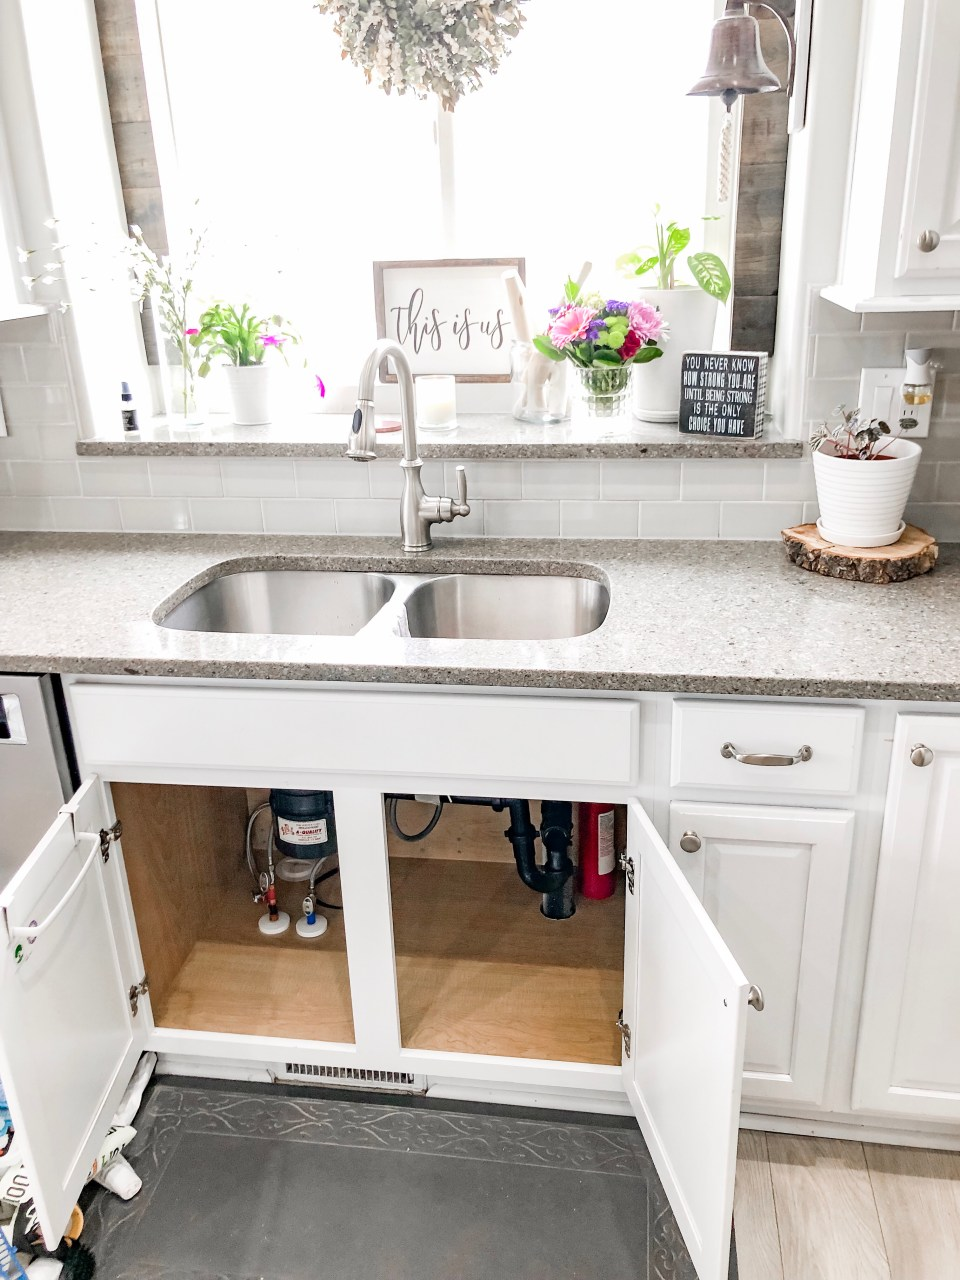 How To Protect Your Kitchen Cabinets From Water Damage Citygirl Meets Farmboy